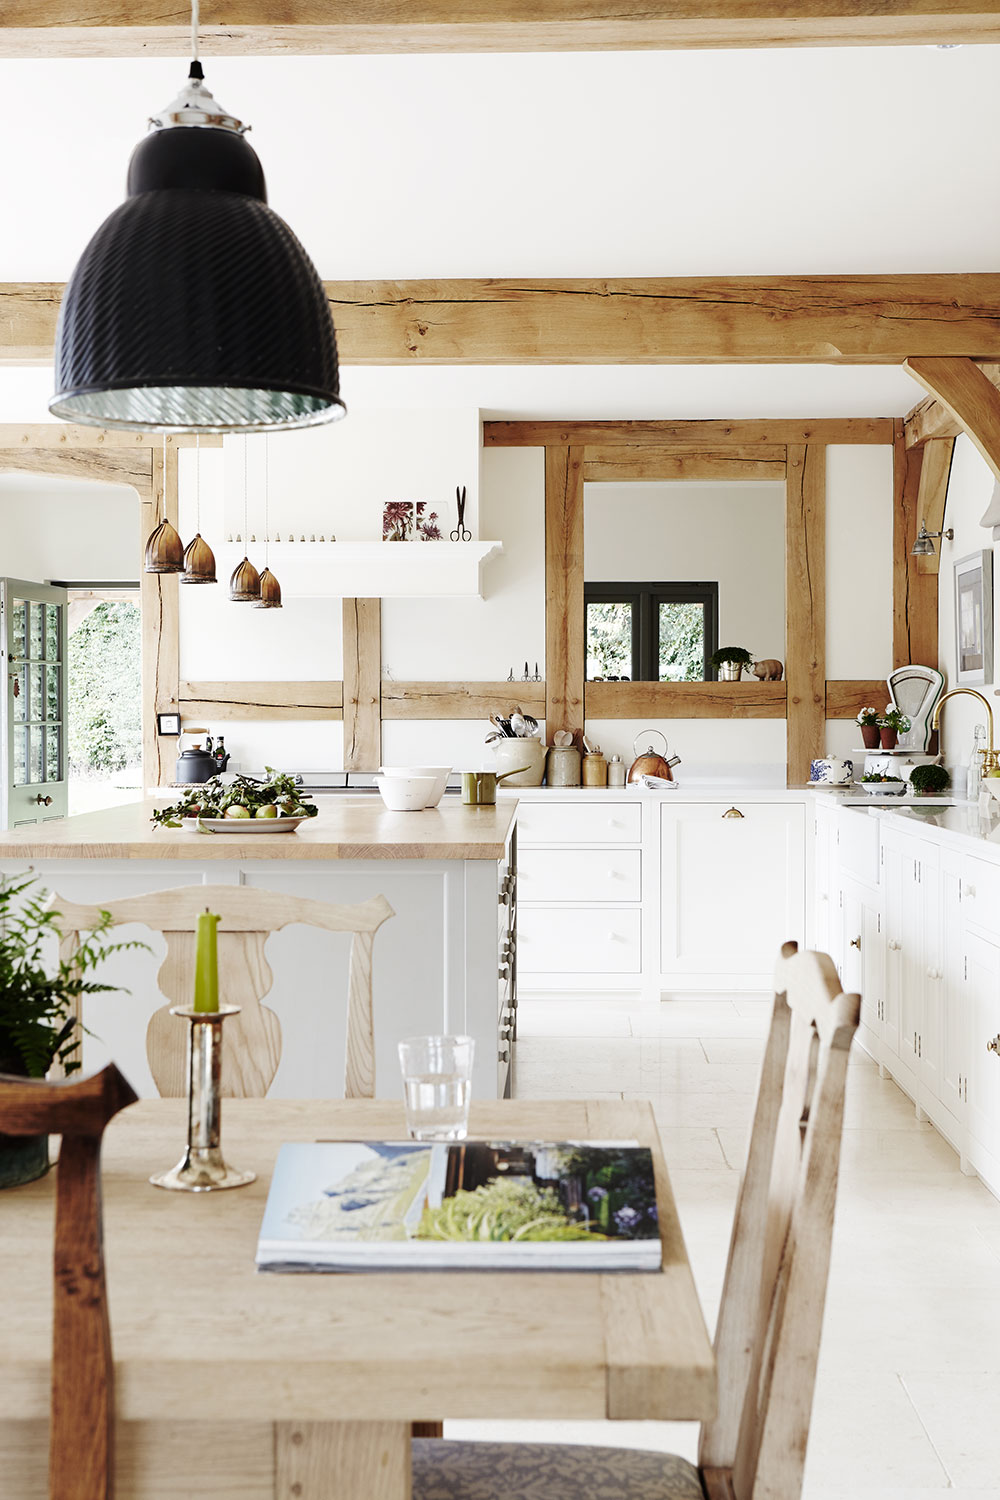 Timber_frame_country_kitchen.jpg